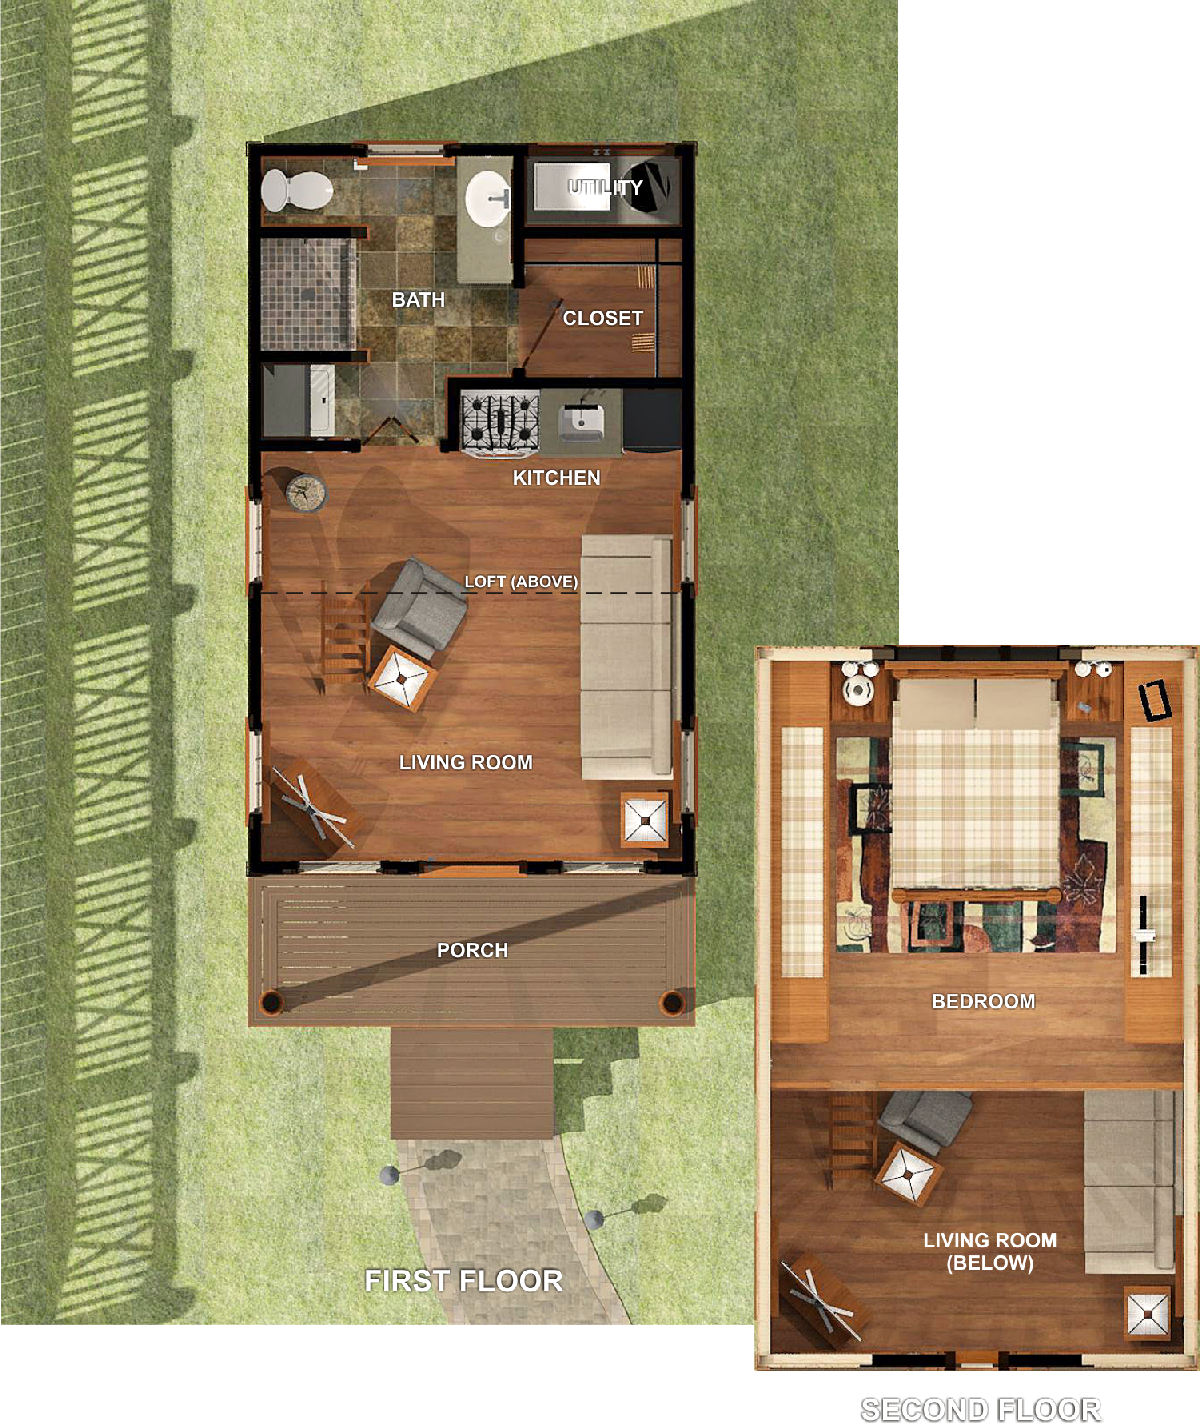 Tiny homes for salecom ideas tiny house on wheels builders for Tiny house floor plans for sale